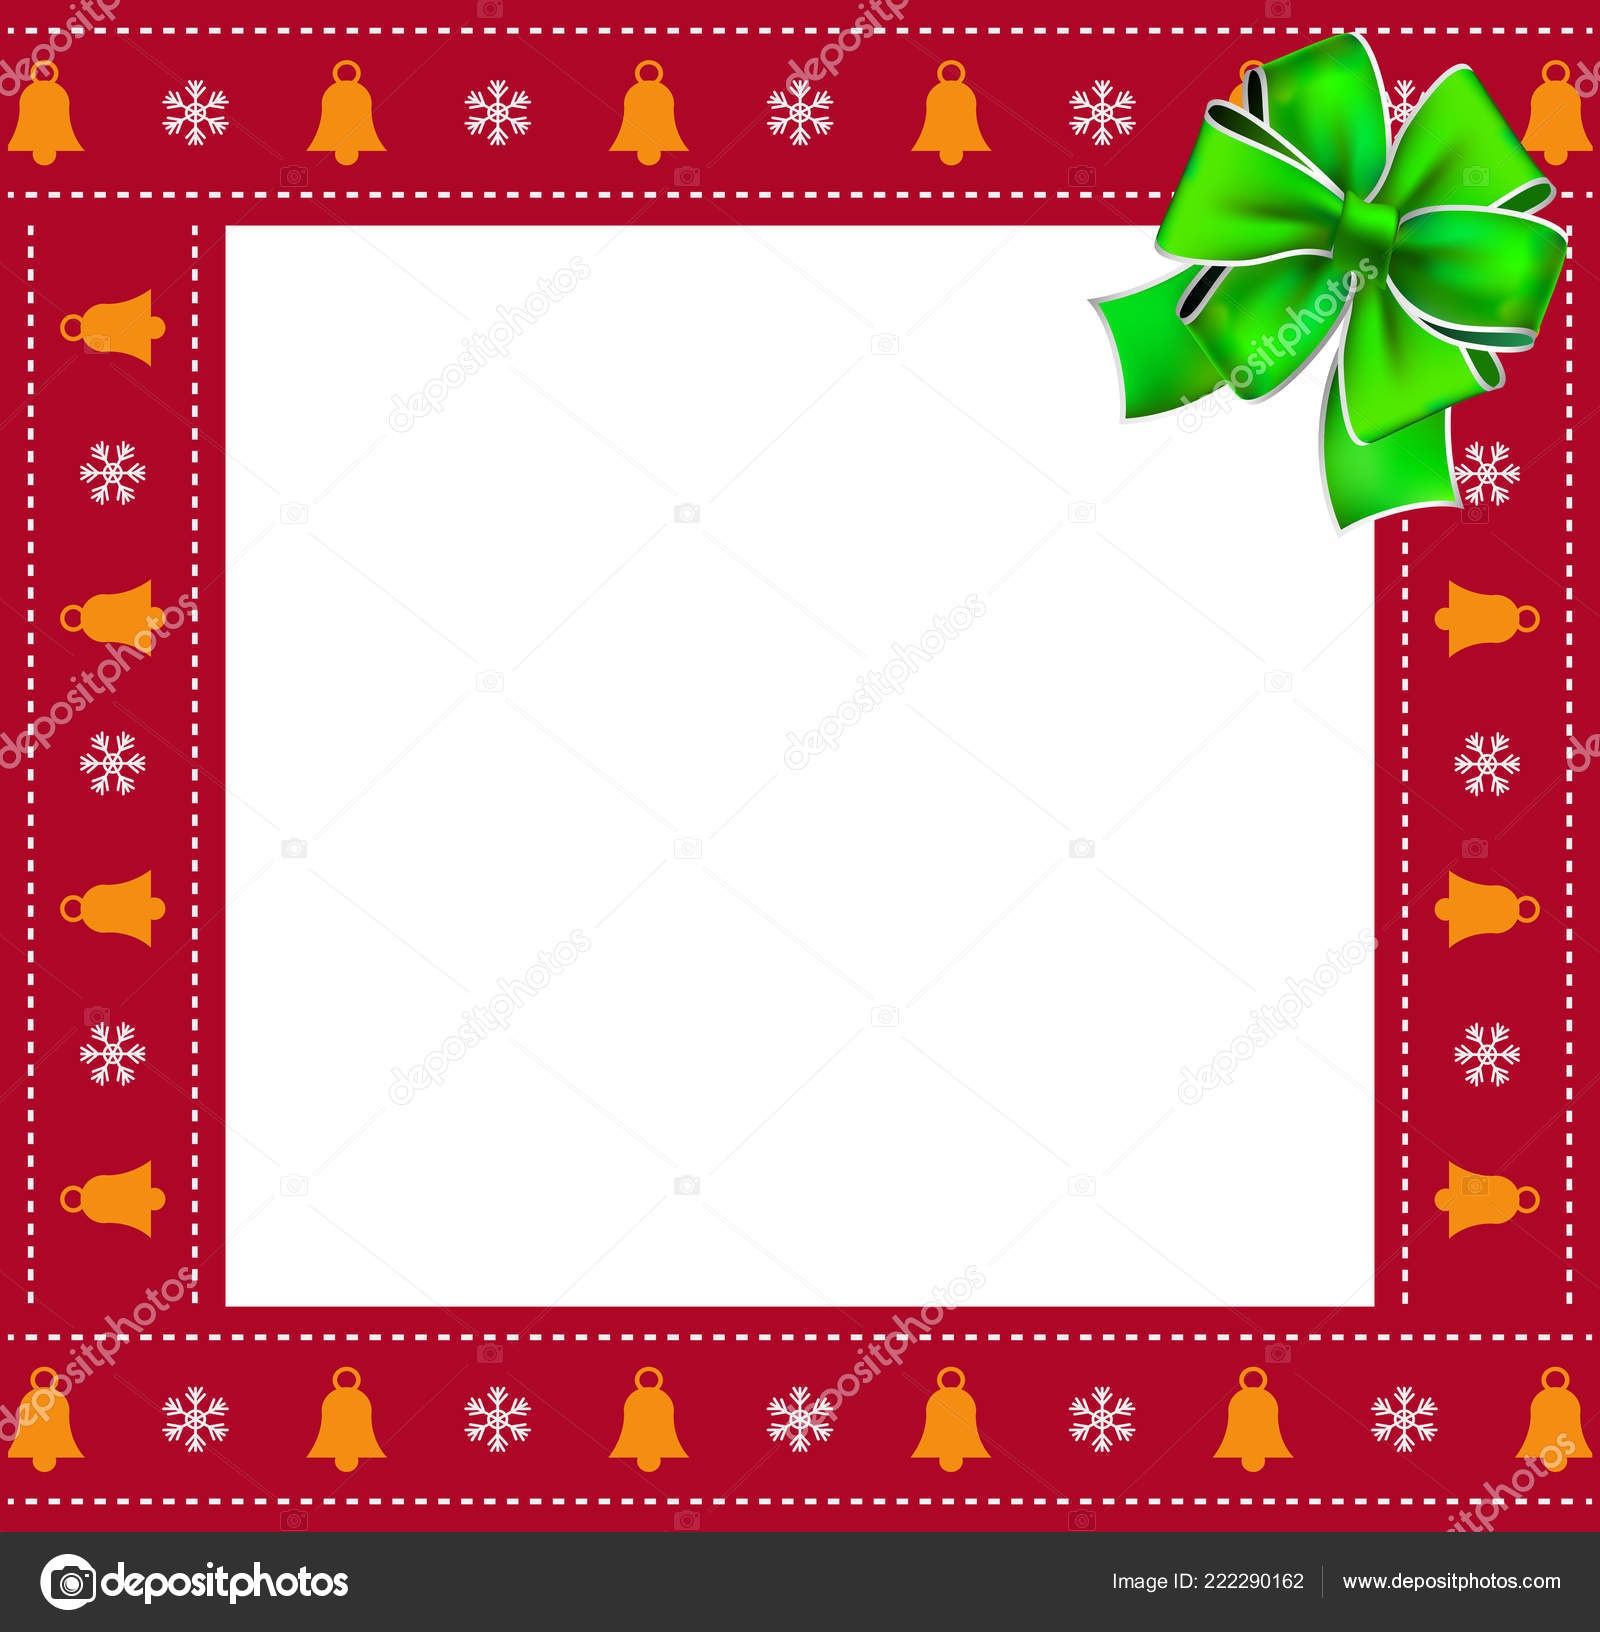 cute christmas or new year square border photo frame with bells and snowflakes pattern and green festive ribbon isolated on white background vector